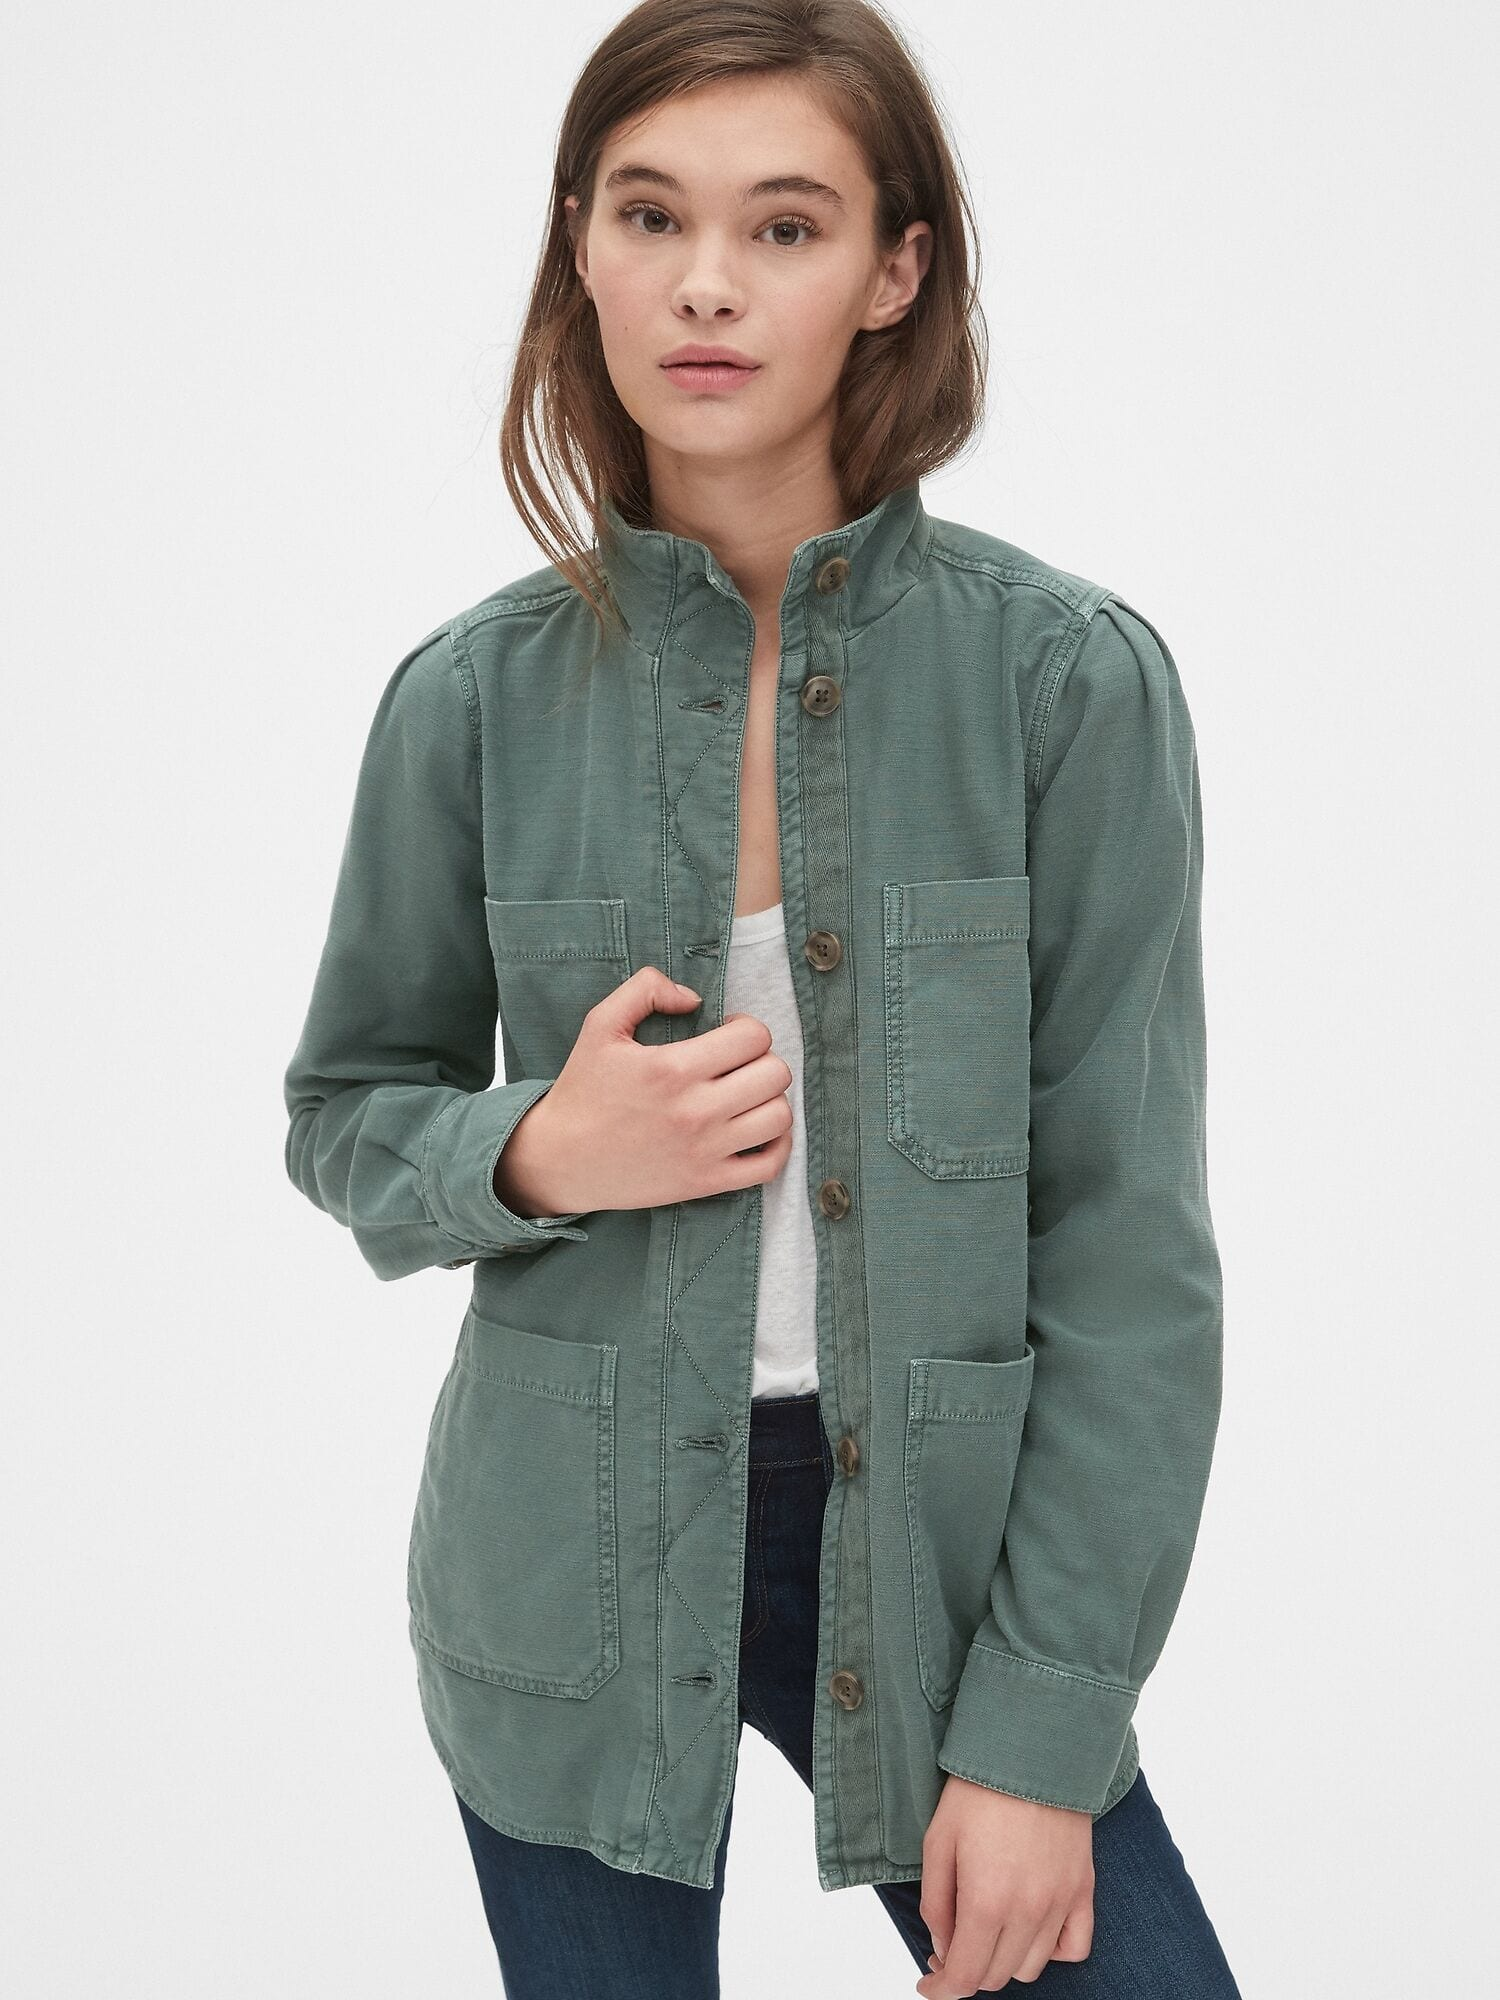 Gap Slub Utility Jacket £64.95